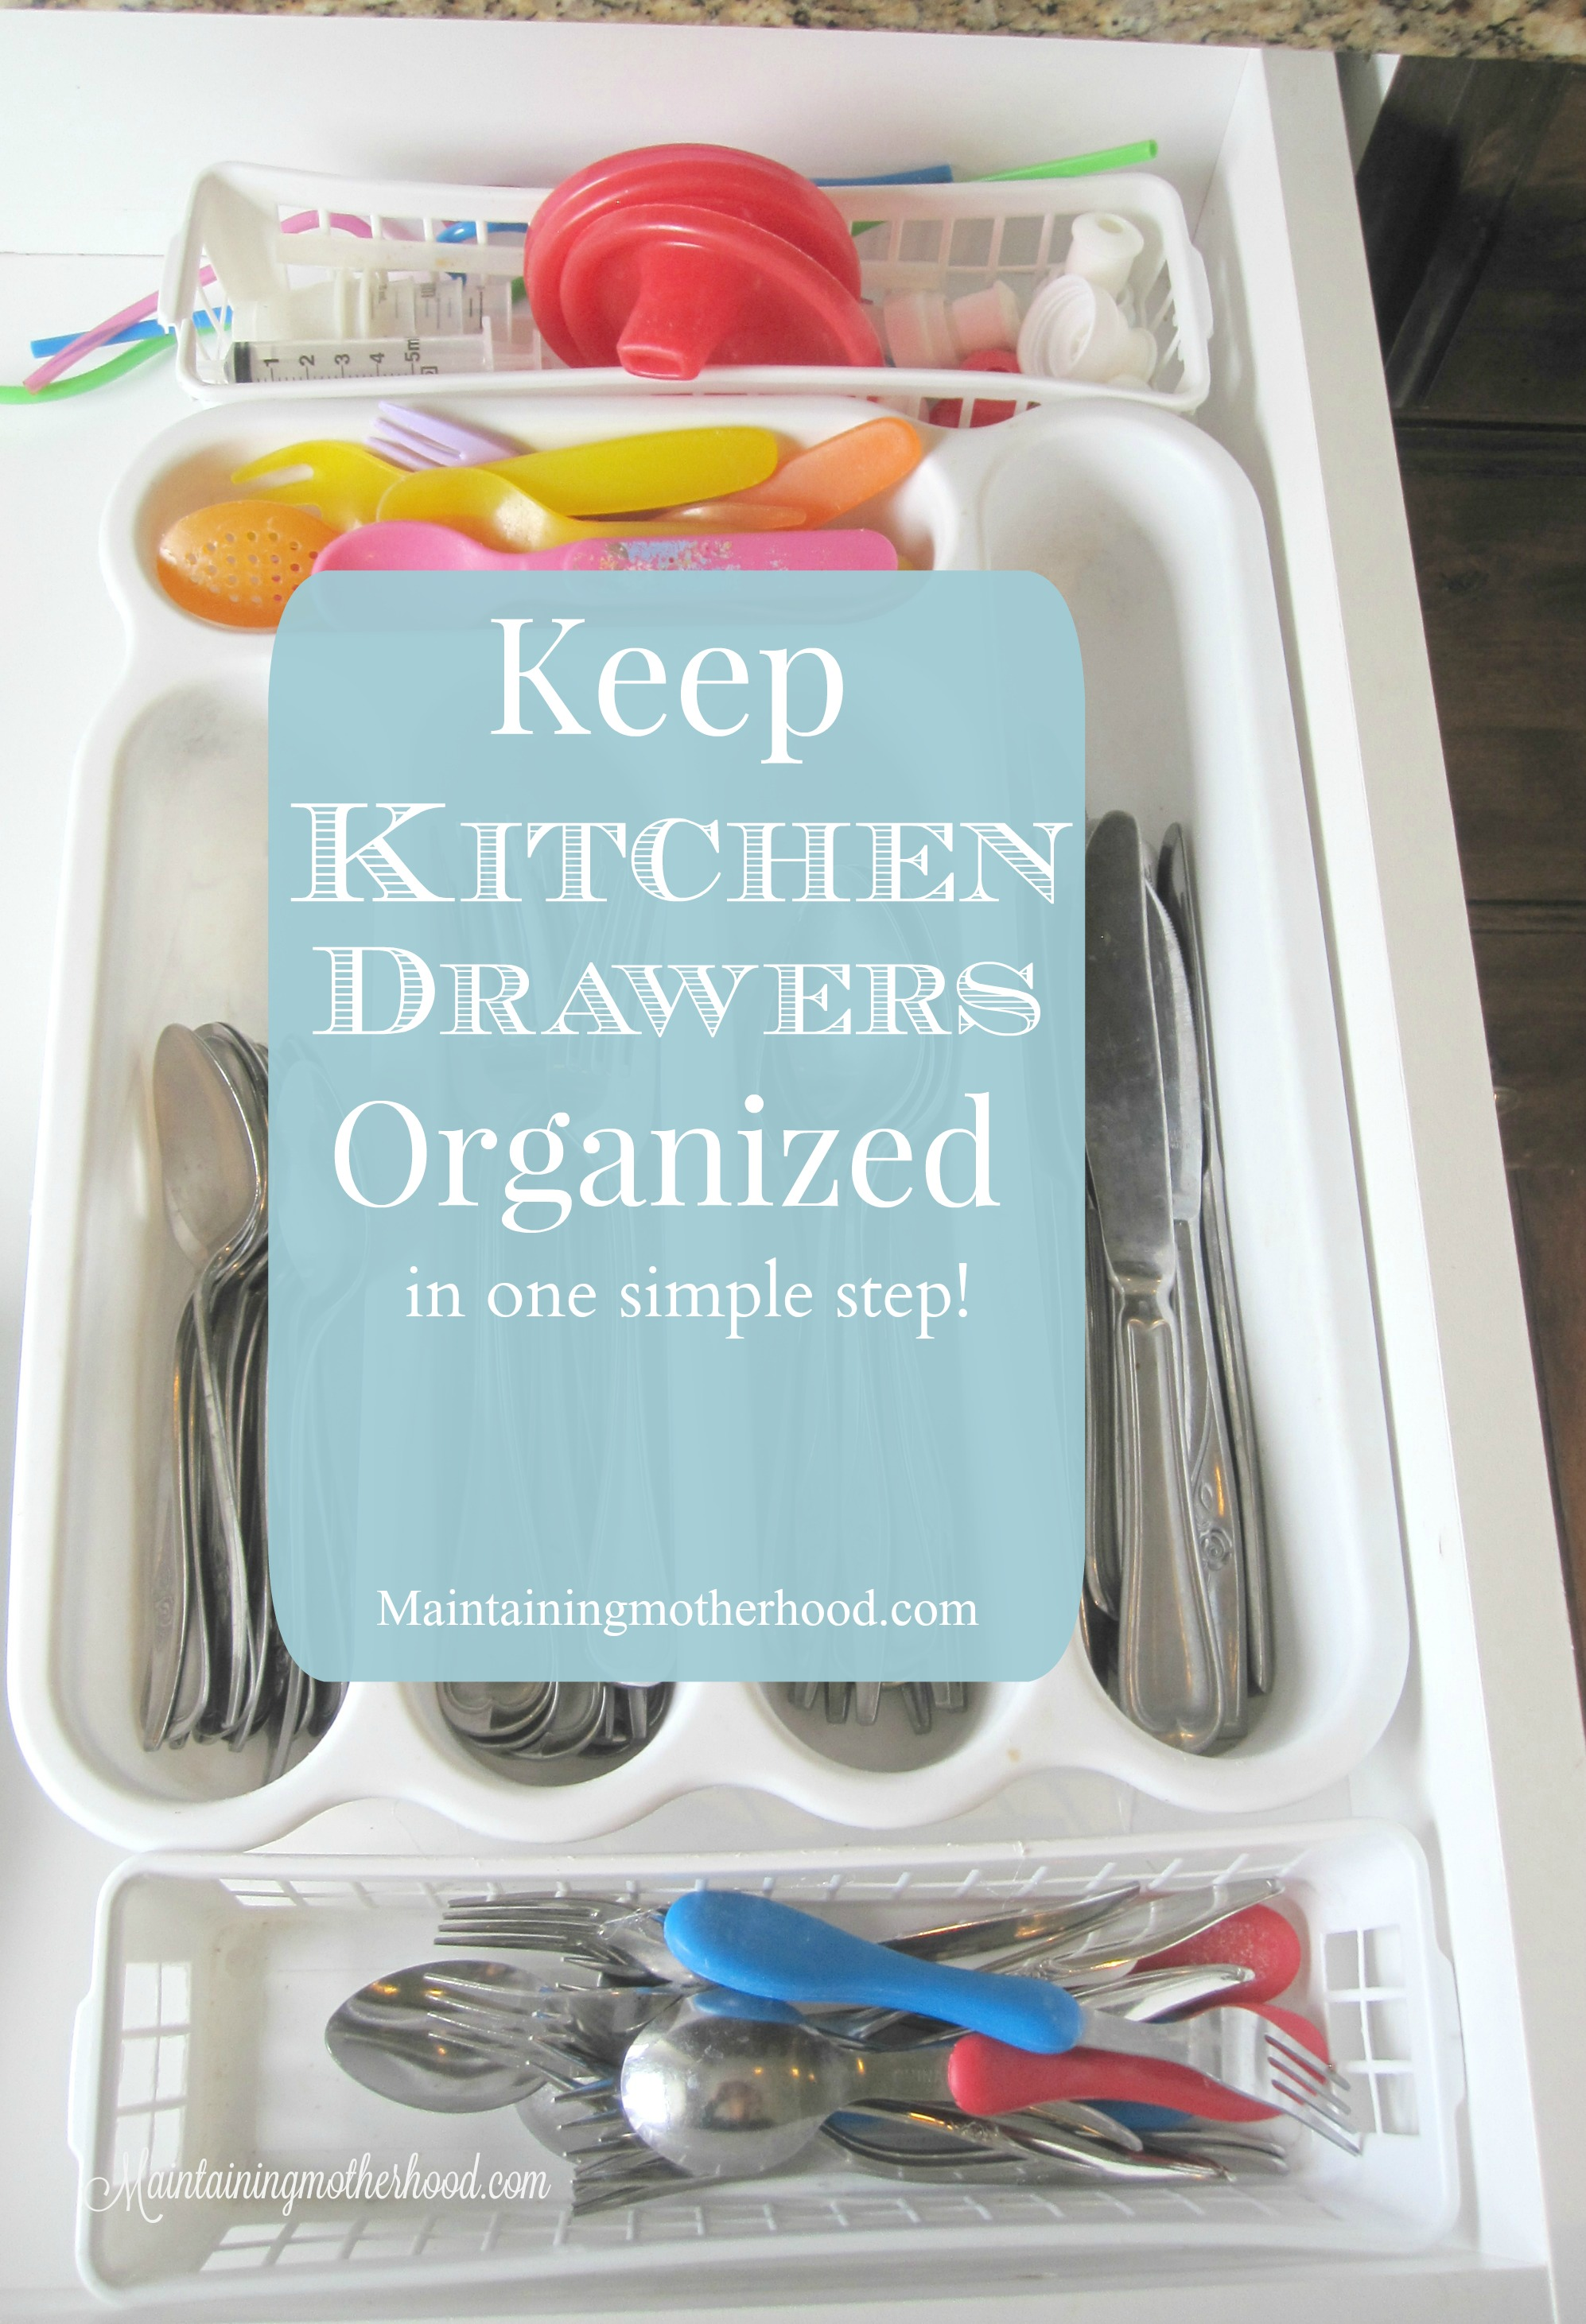 Keep Kitchen Drawers Organized – Maintaining Motherhood